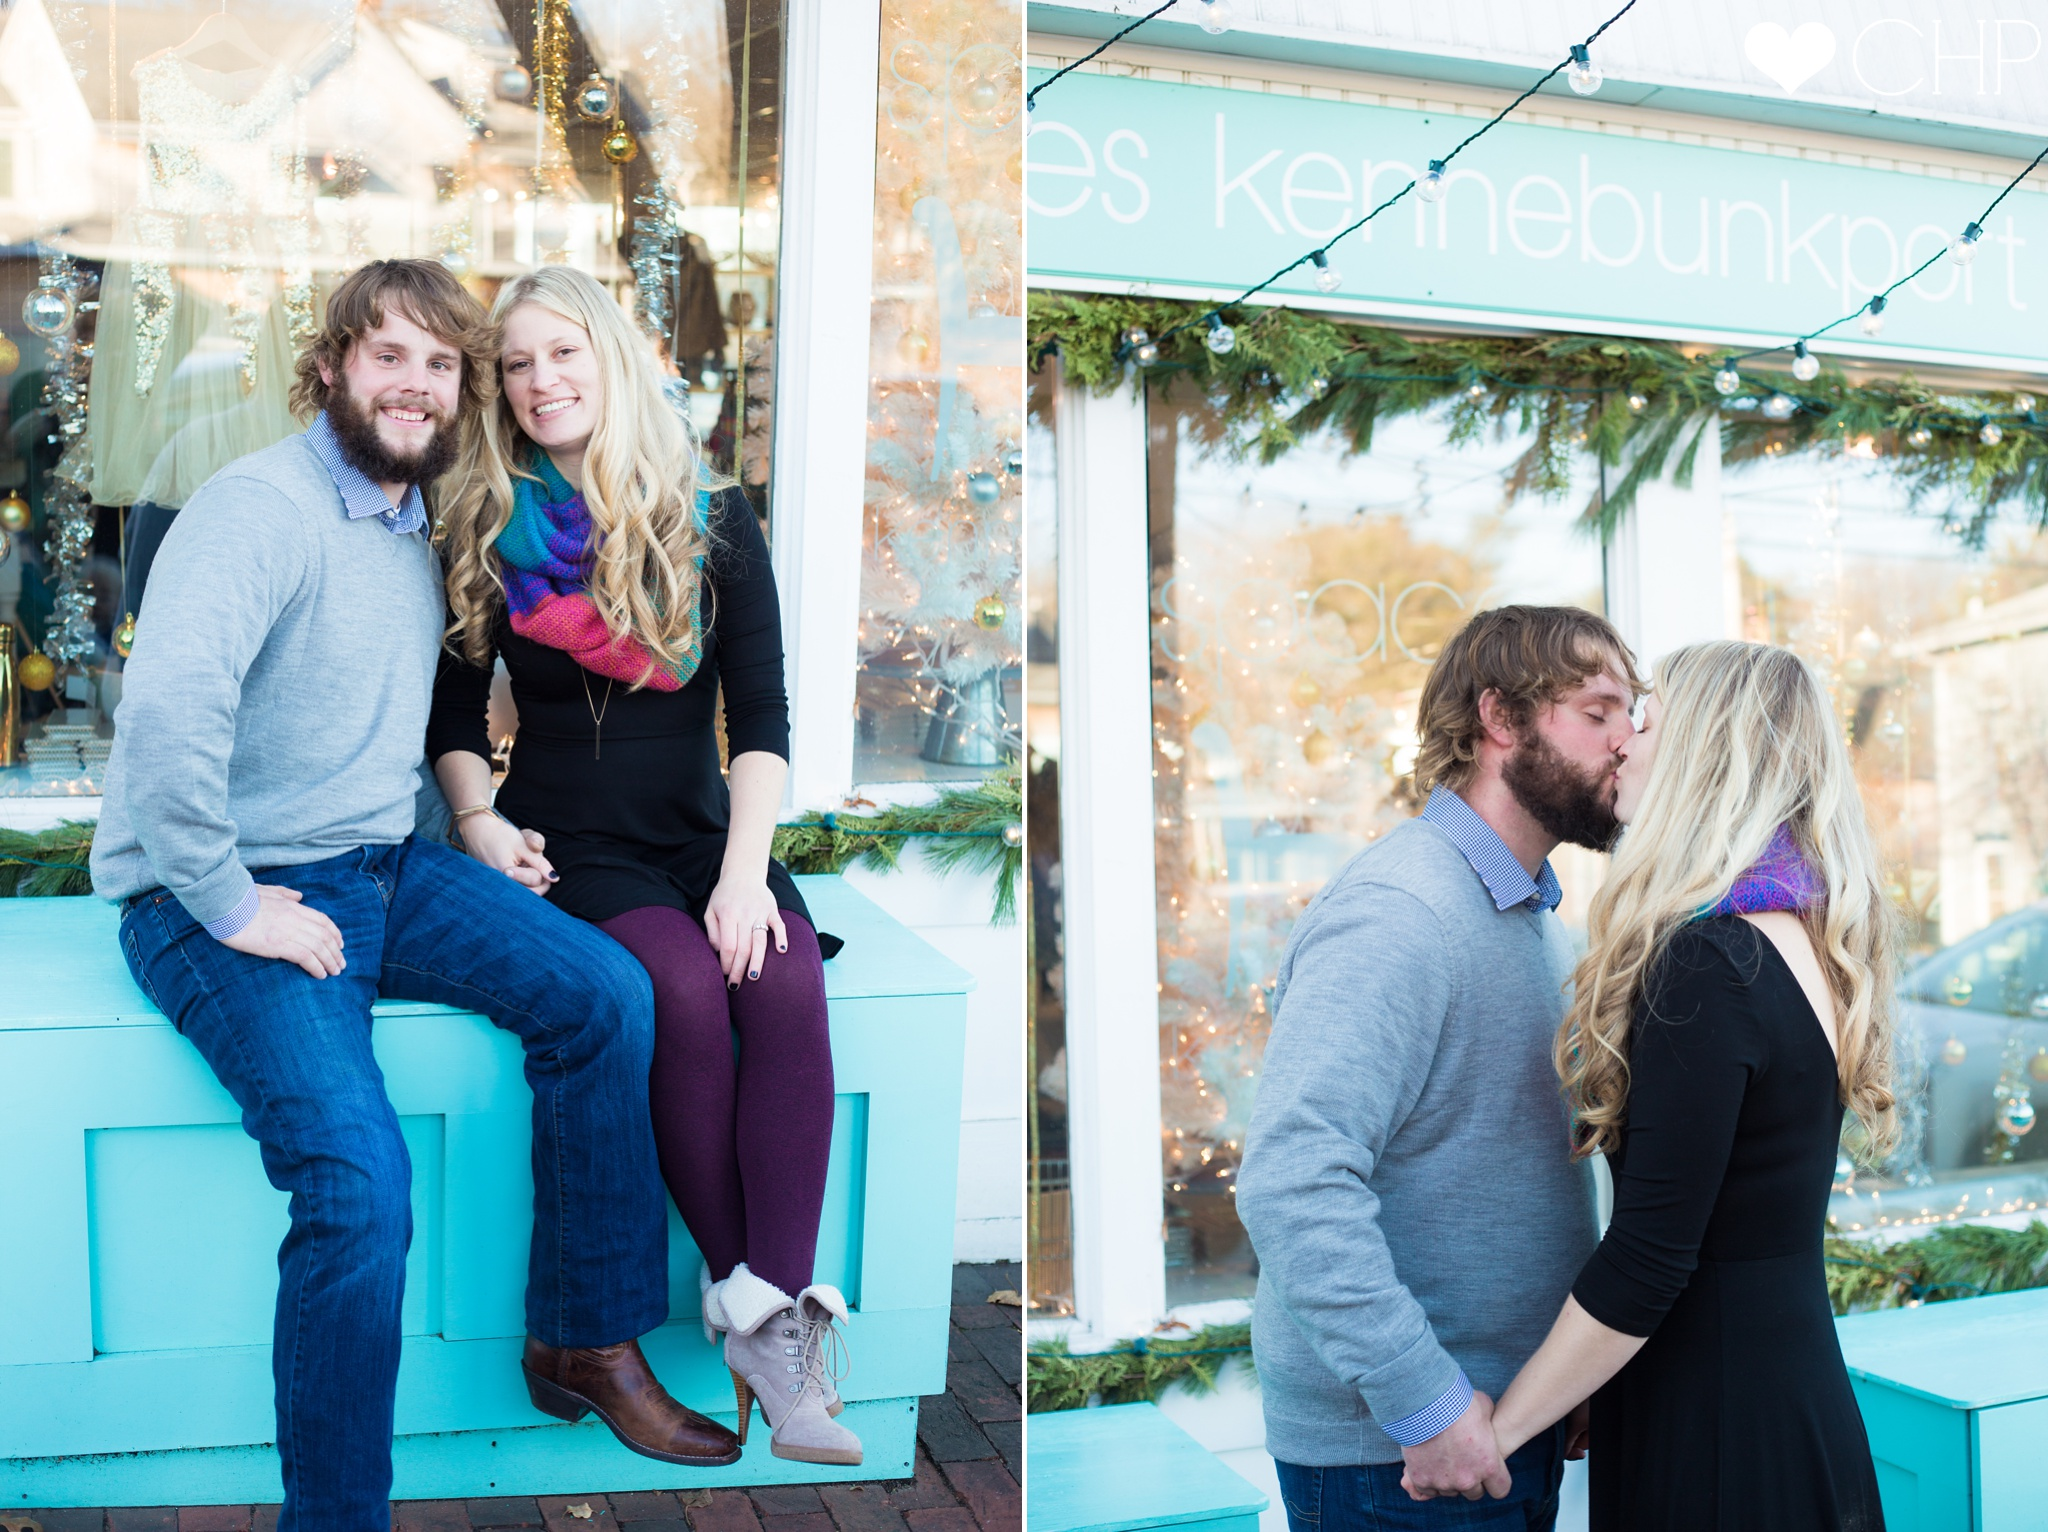 Engagement-Pictures-taken-in-Kennebunkport-Maine